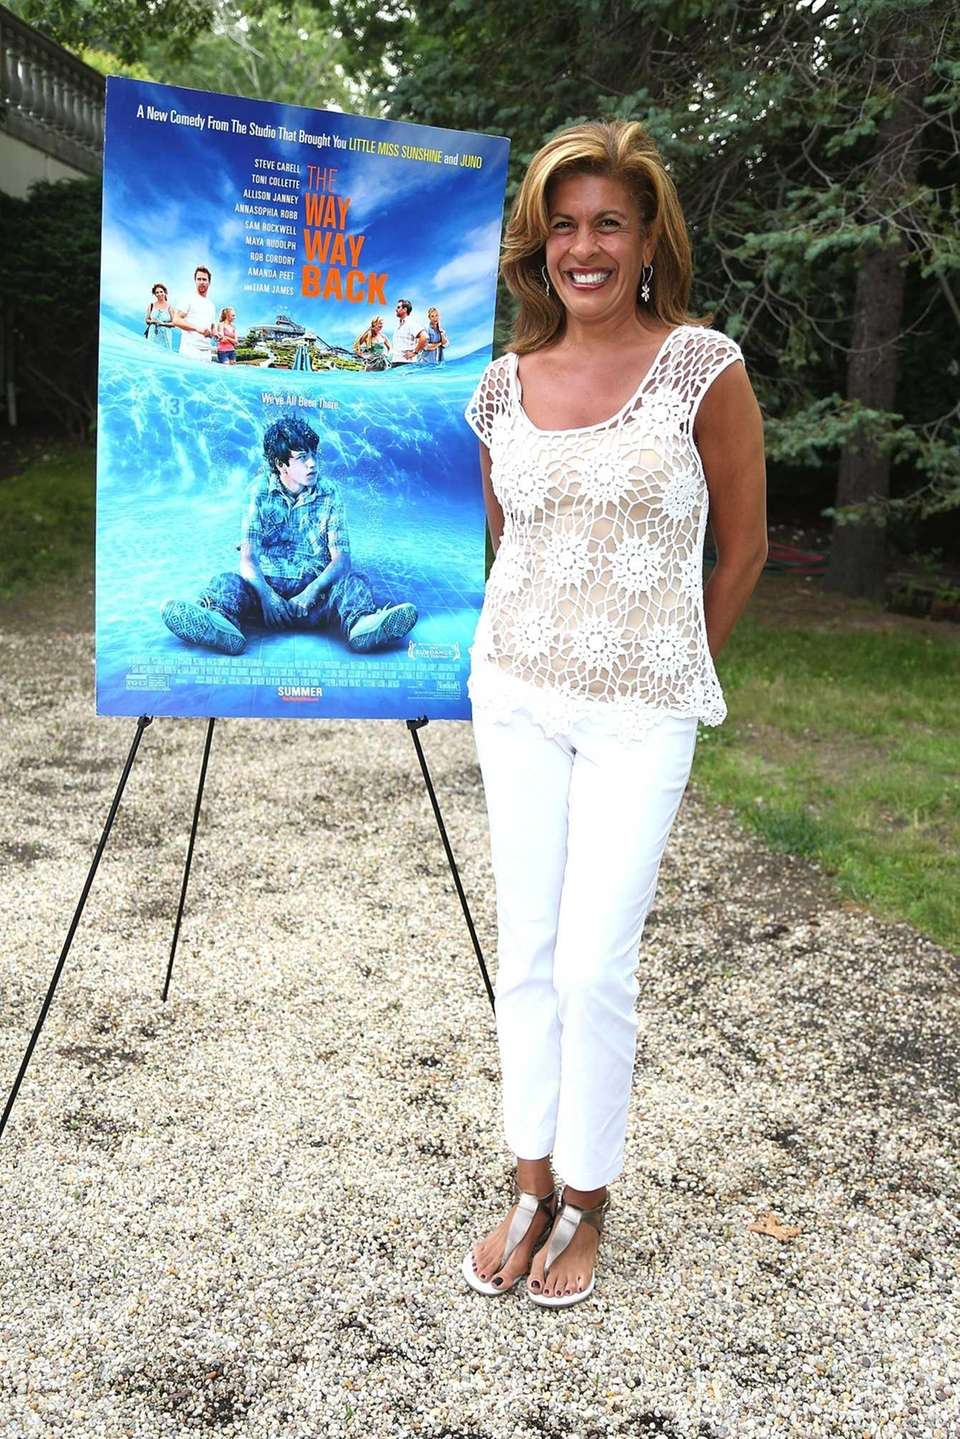 Hoda Kotb attends the after-party for a special